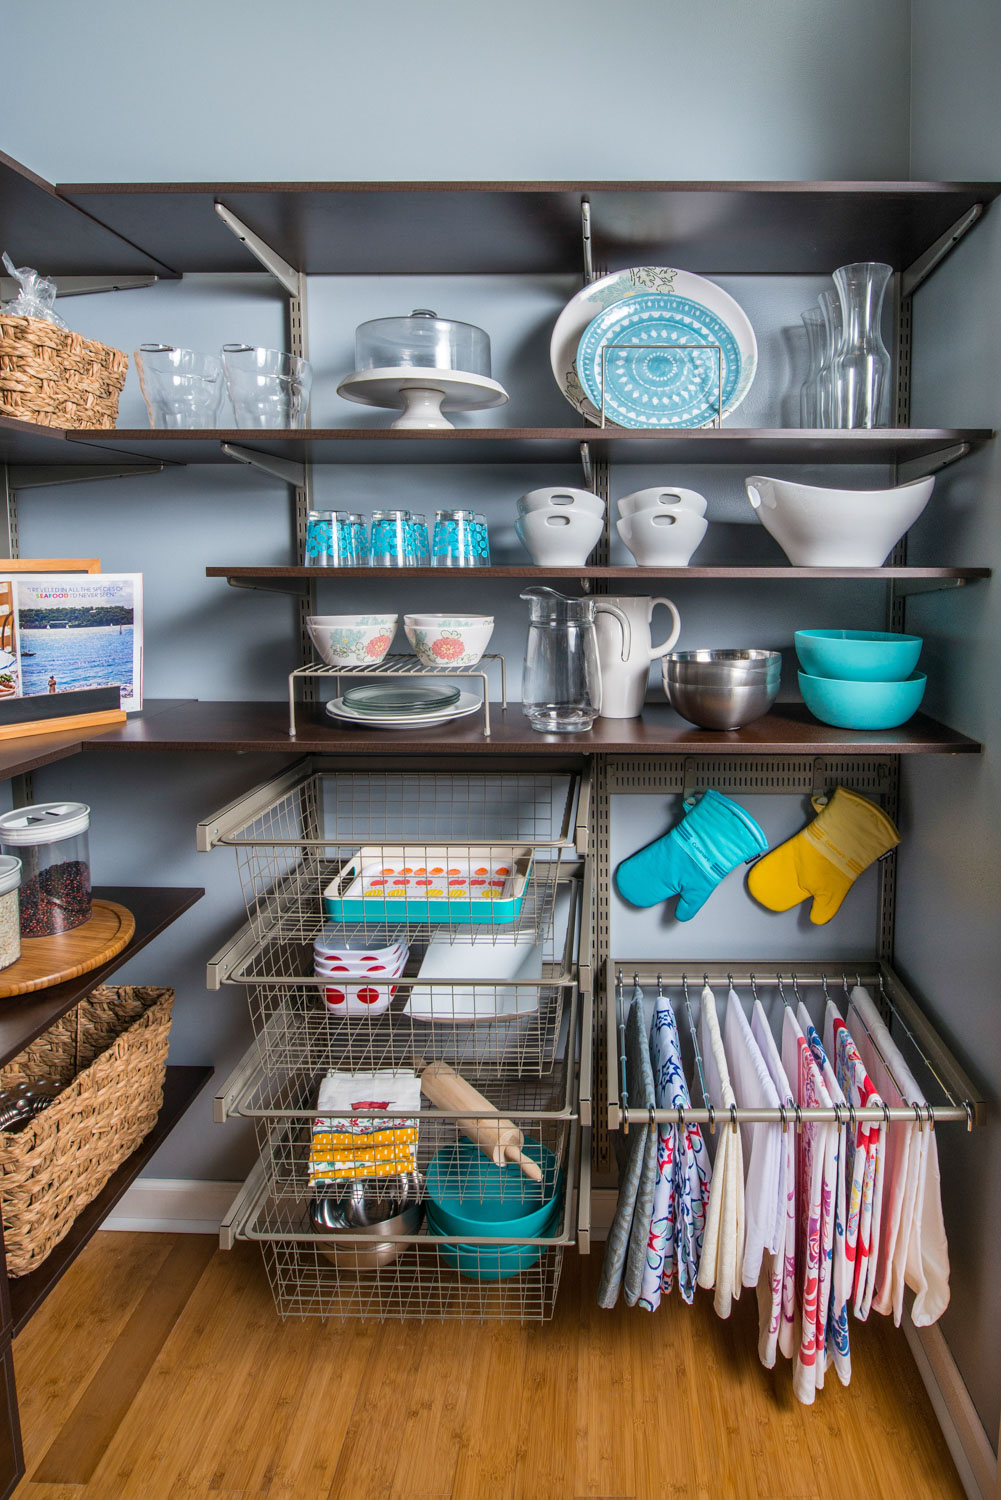 pantry shelves creative ideas for more inspiring pantry storage. Pantry Inspiration. View Full Gallery. 12 More Shelves Creative Ideas For Inspiring Storage T